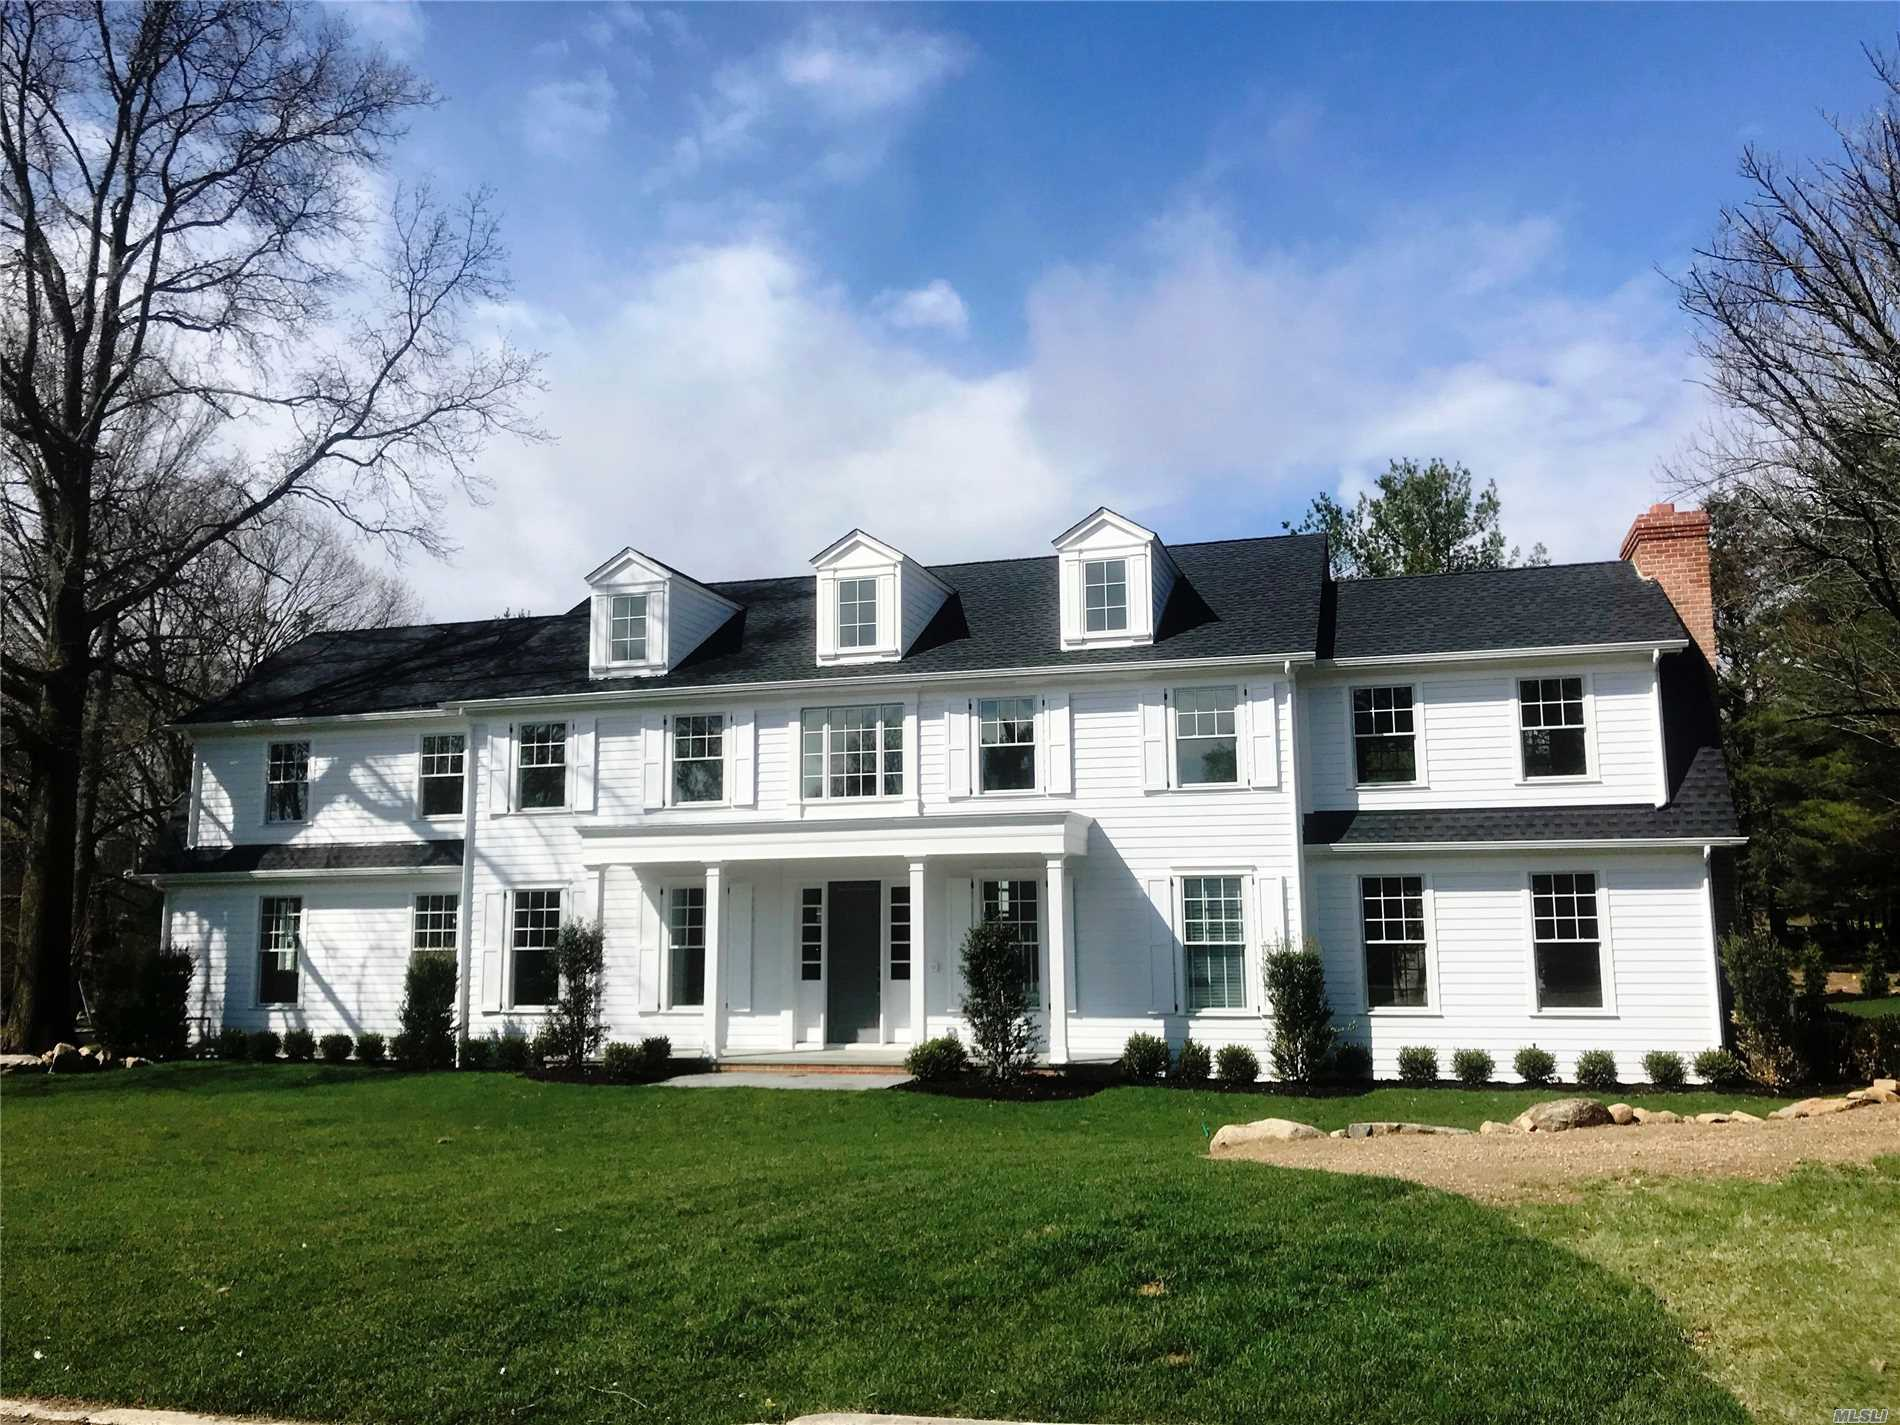 Magnificent 2019, 5000 Int.Sq Ft. Over 1/2 Acre, 5 Bedrooms, 5.1 Full Baths, Guest Room W/Private Enterance.2 Car Garage. Top Of The Line Appliances, 3 Zone Cac & Heating. Special Amenities.